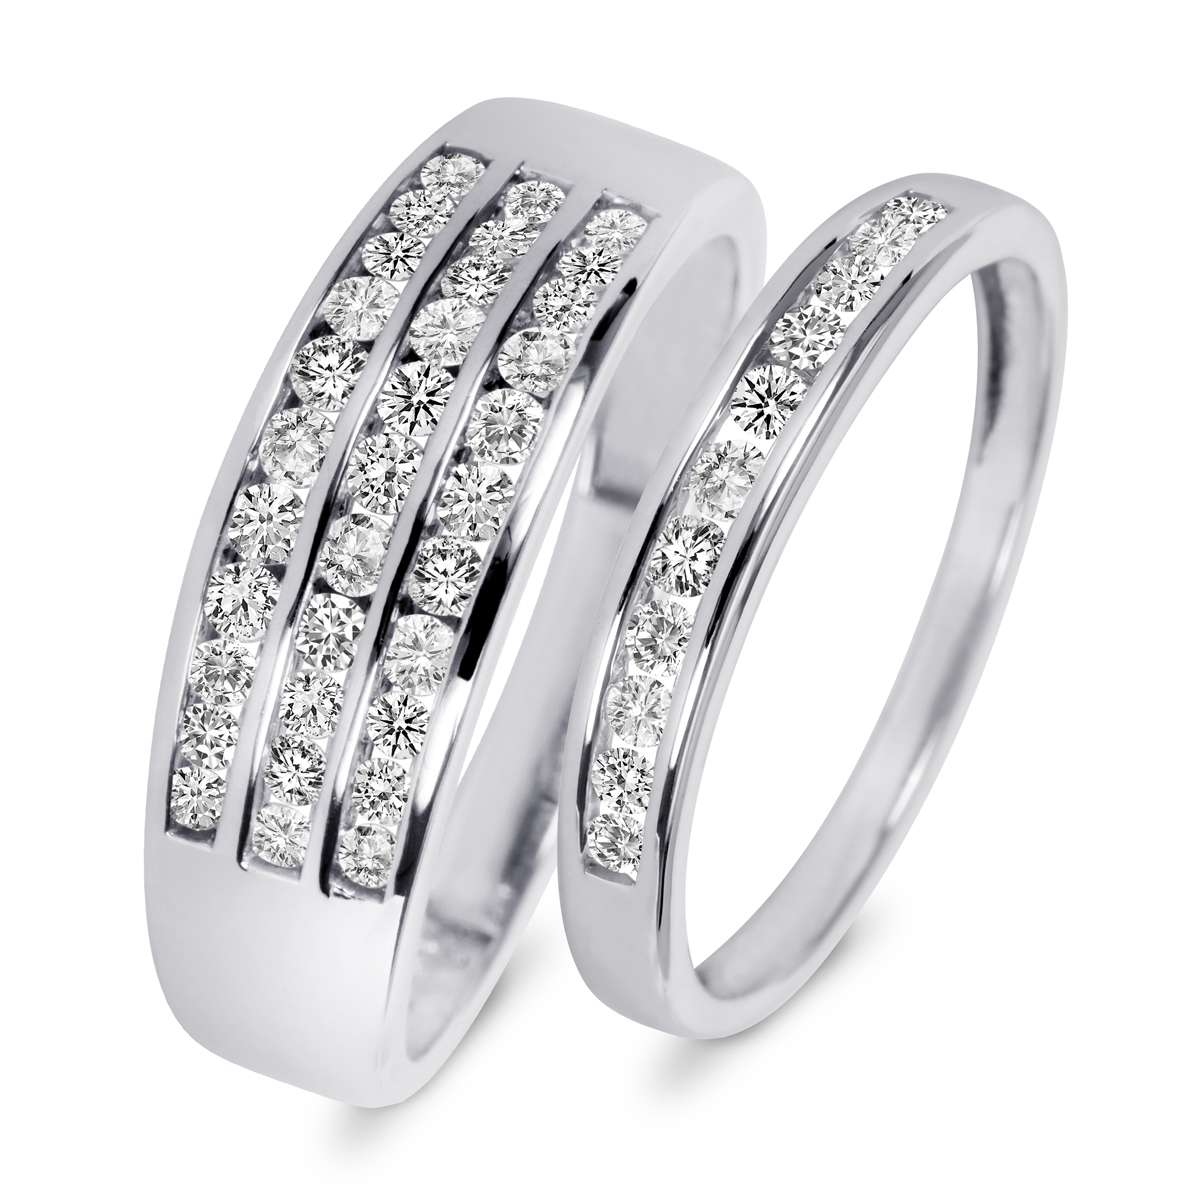 Platinum his and hers wedding rings wedding bands his - Platinum His And Hers Wedding Rings Wedding Bands His 1